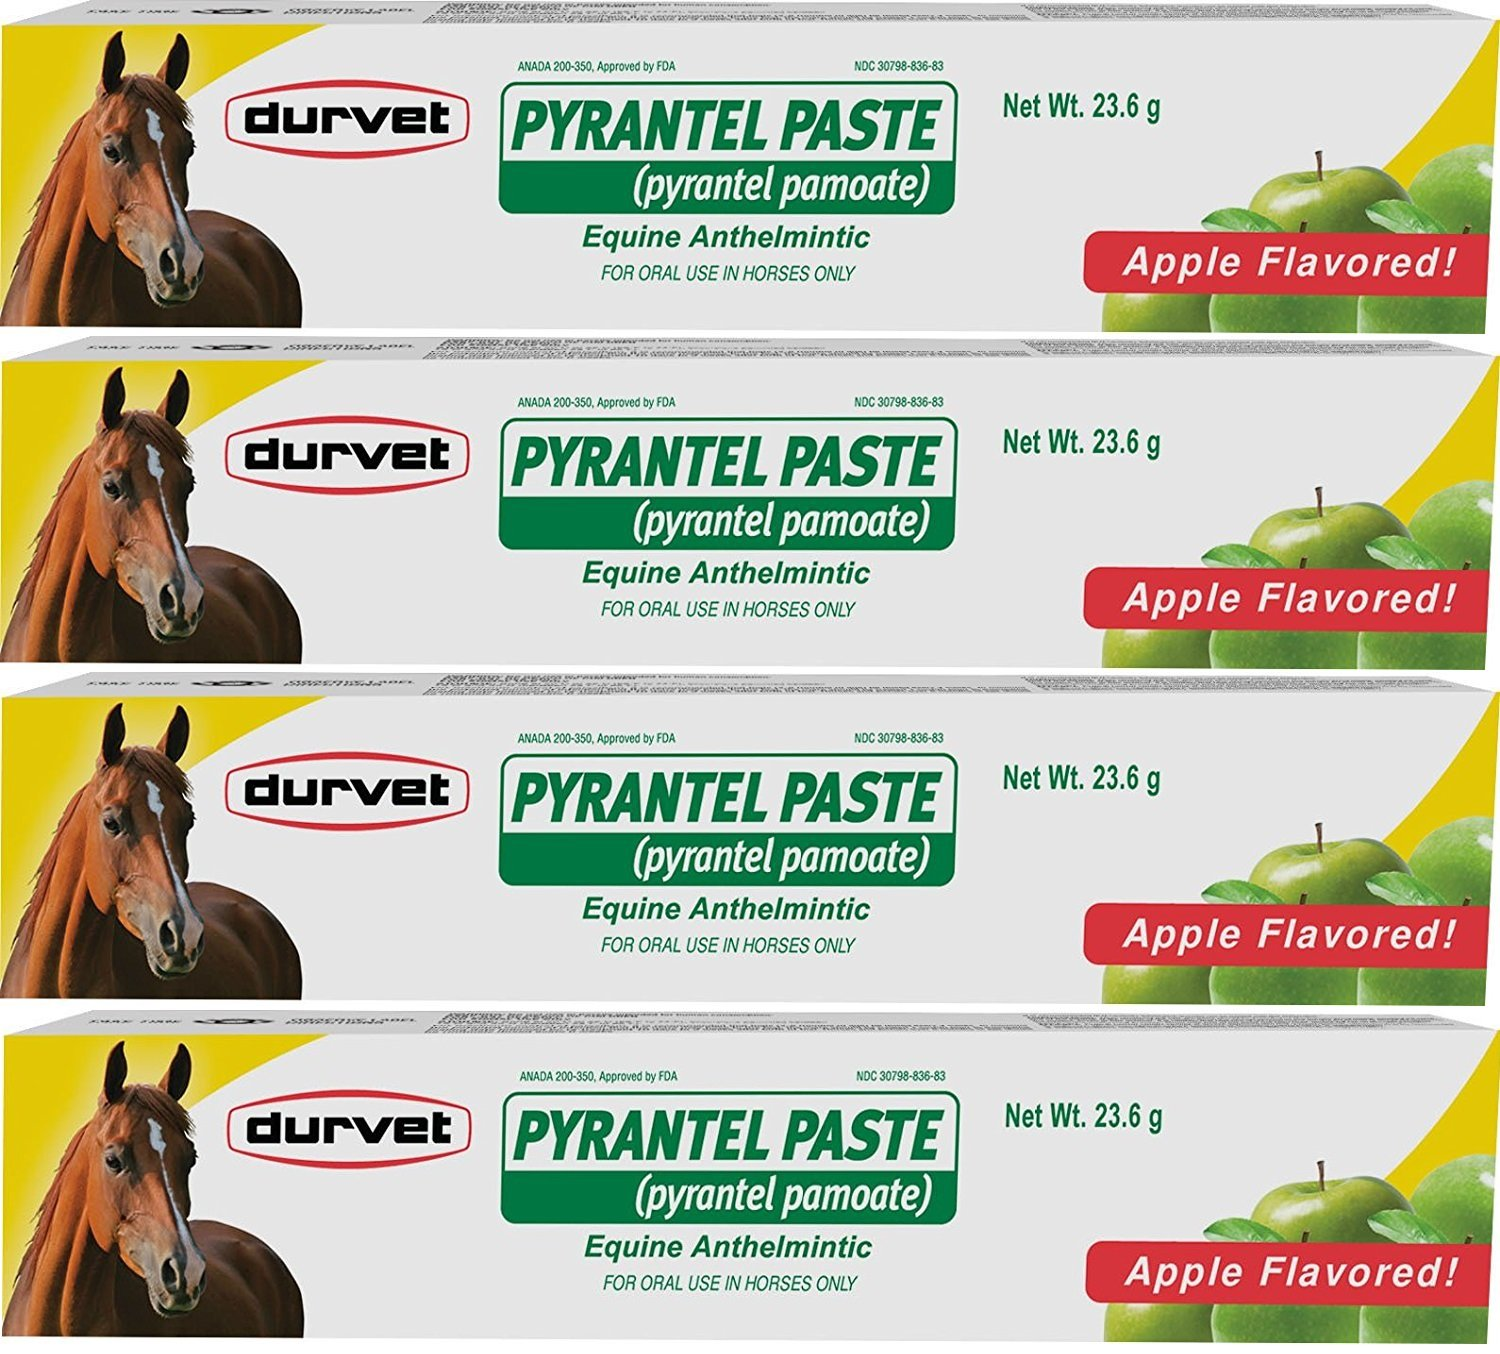 (4 Pack) Durvet Pyrantel Paste Wormer, 23.6gm Per Pack